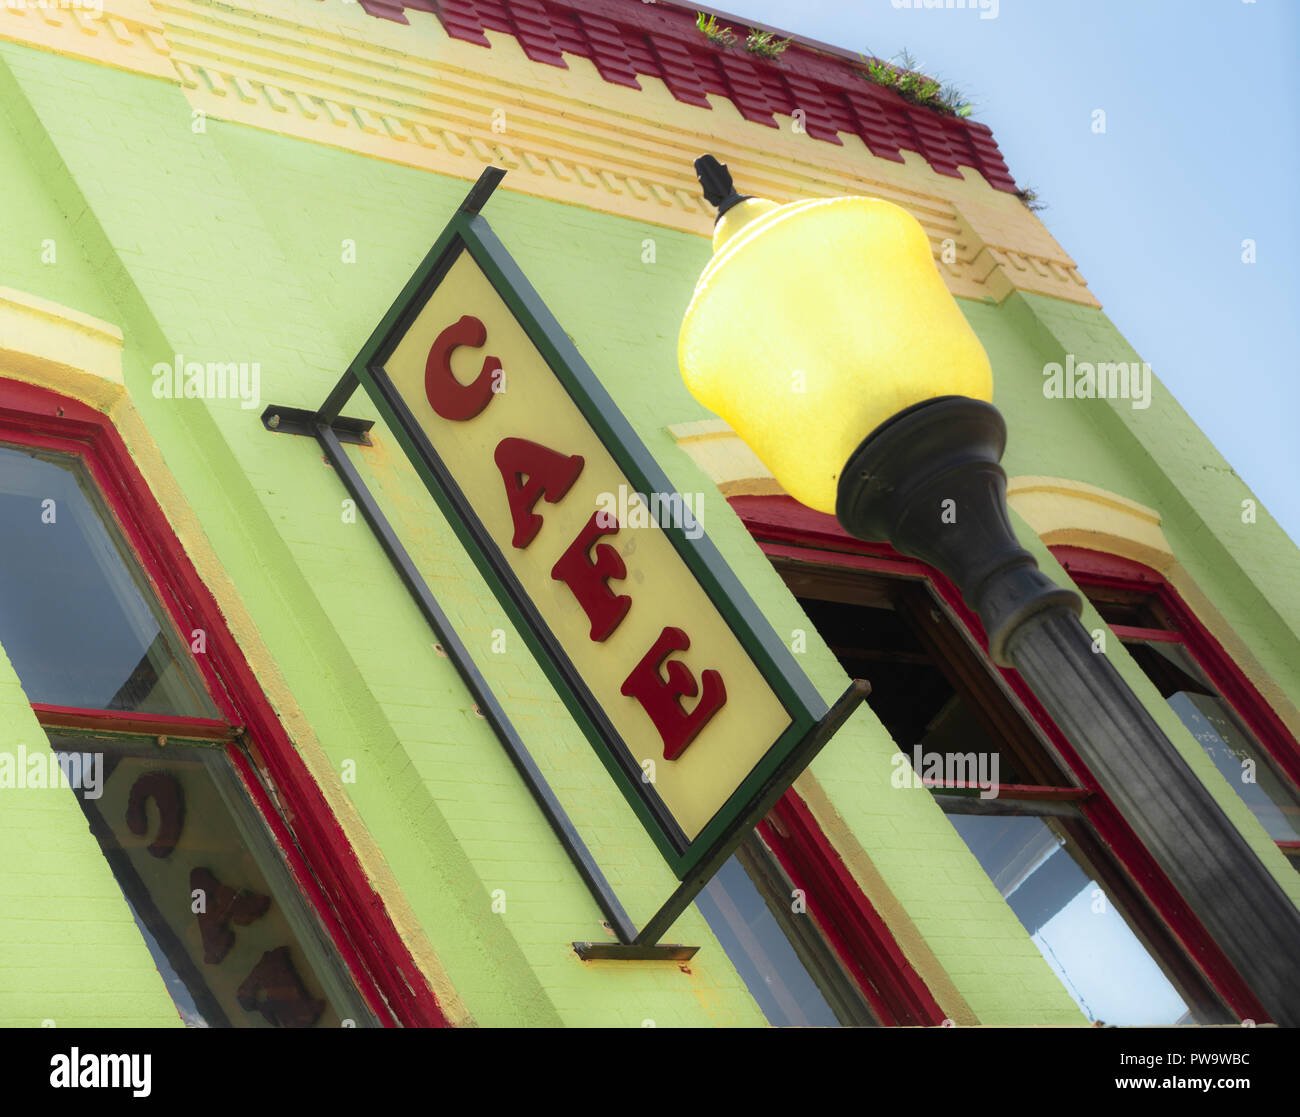 Tight crop with blue sky and clouds building wall cafe sign slanted view yellow lamppost - Stock Image